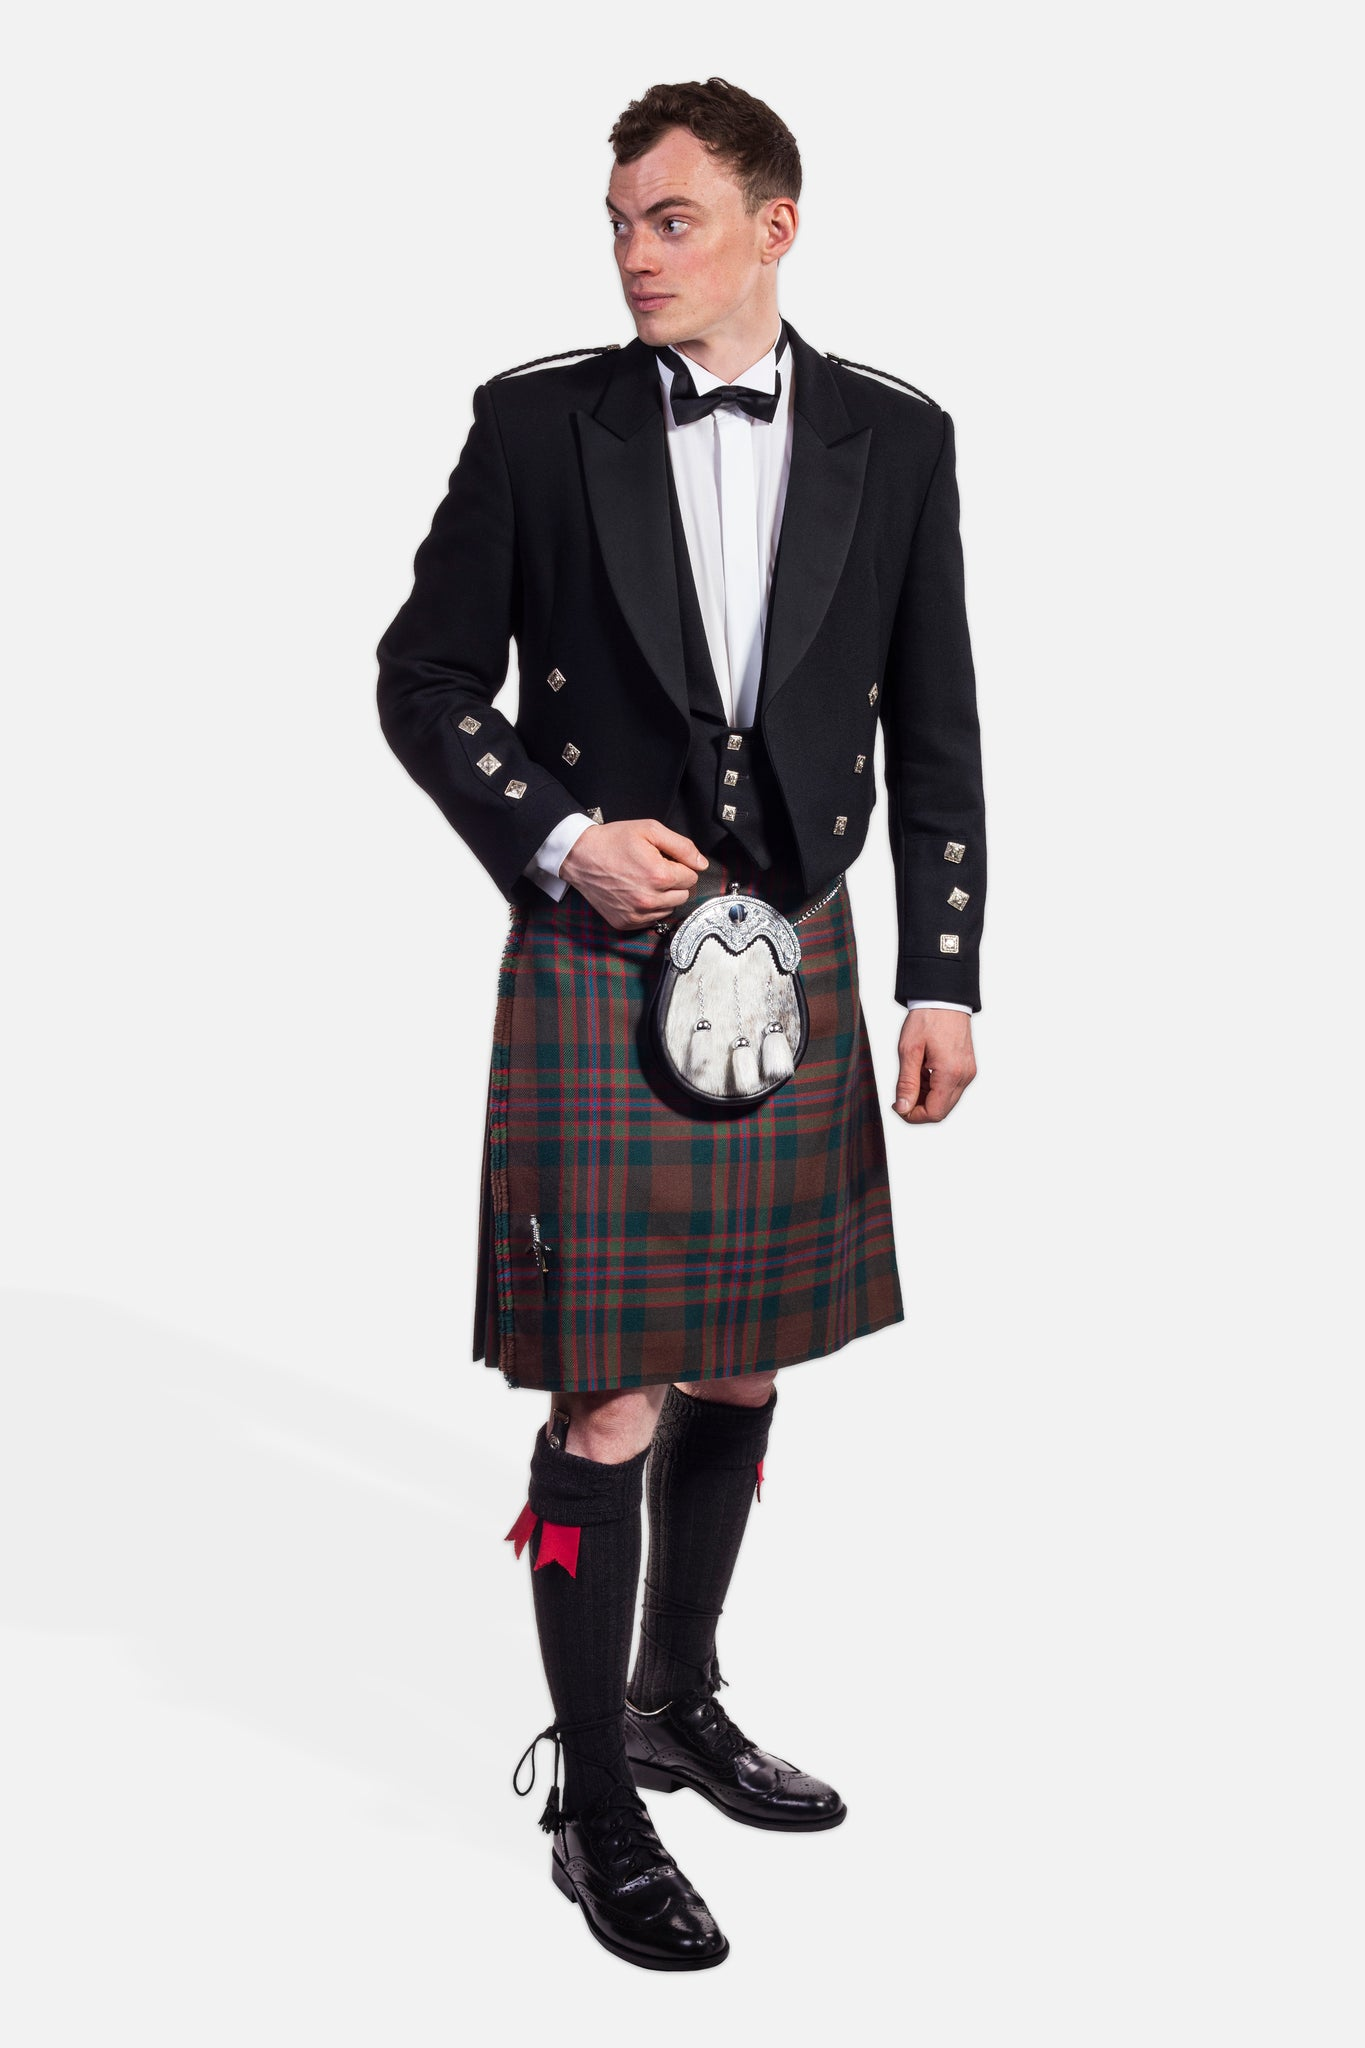 John Muir Way / Prince Charlie Hire Outfit